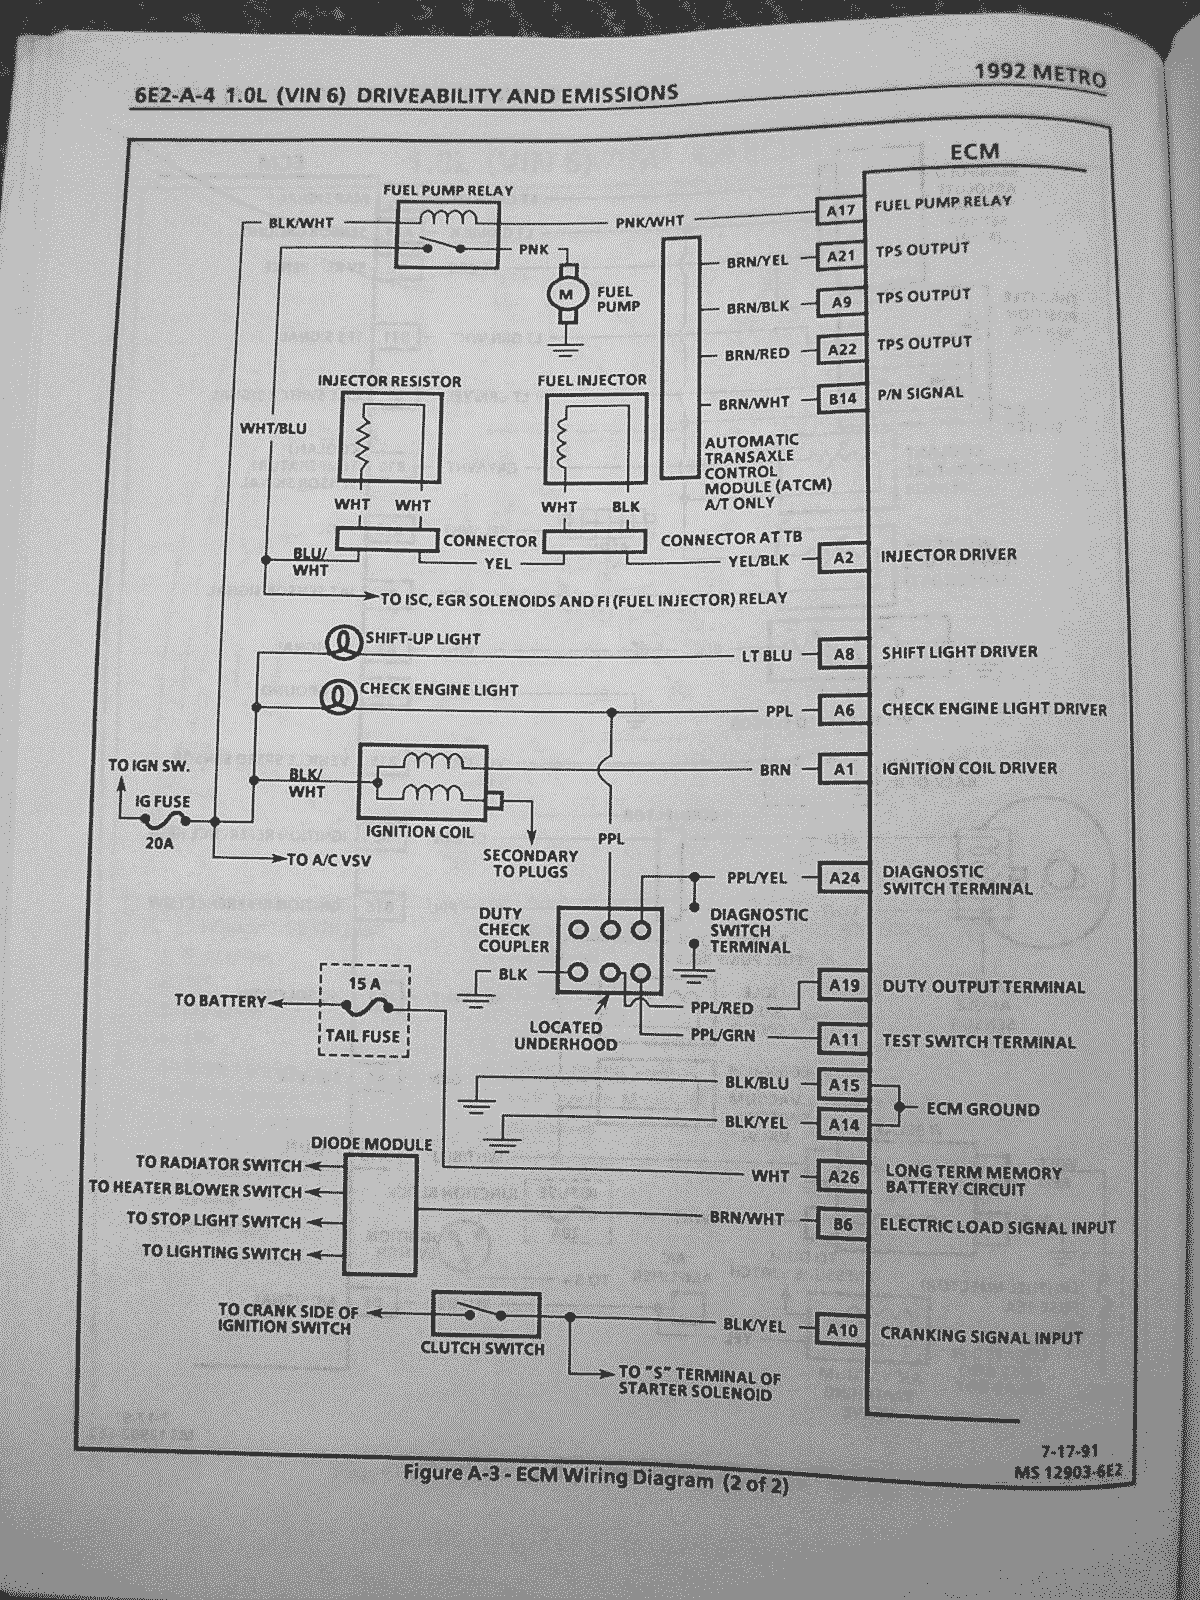 6e2 a 4 geo metro and suzuki swift wiring diagrams metroxfi com 1996 geo metro wiring diagram at bakdesigns.co